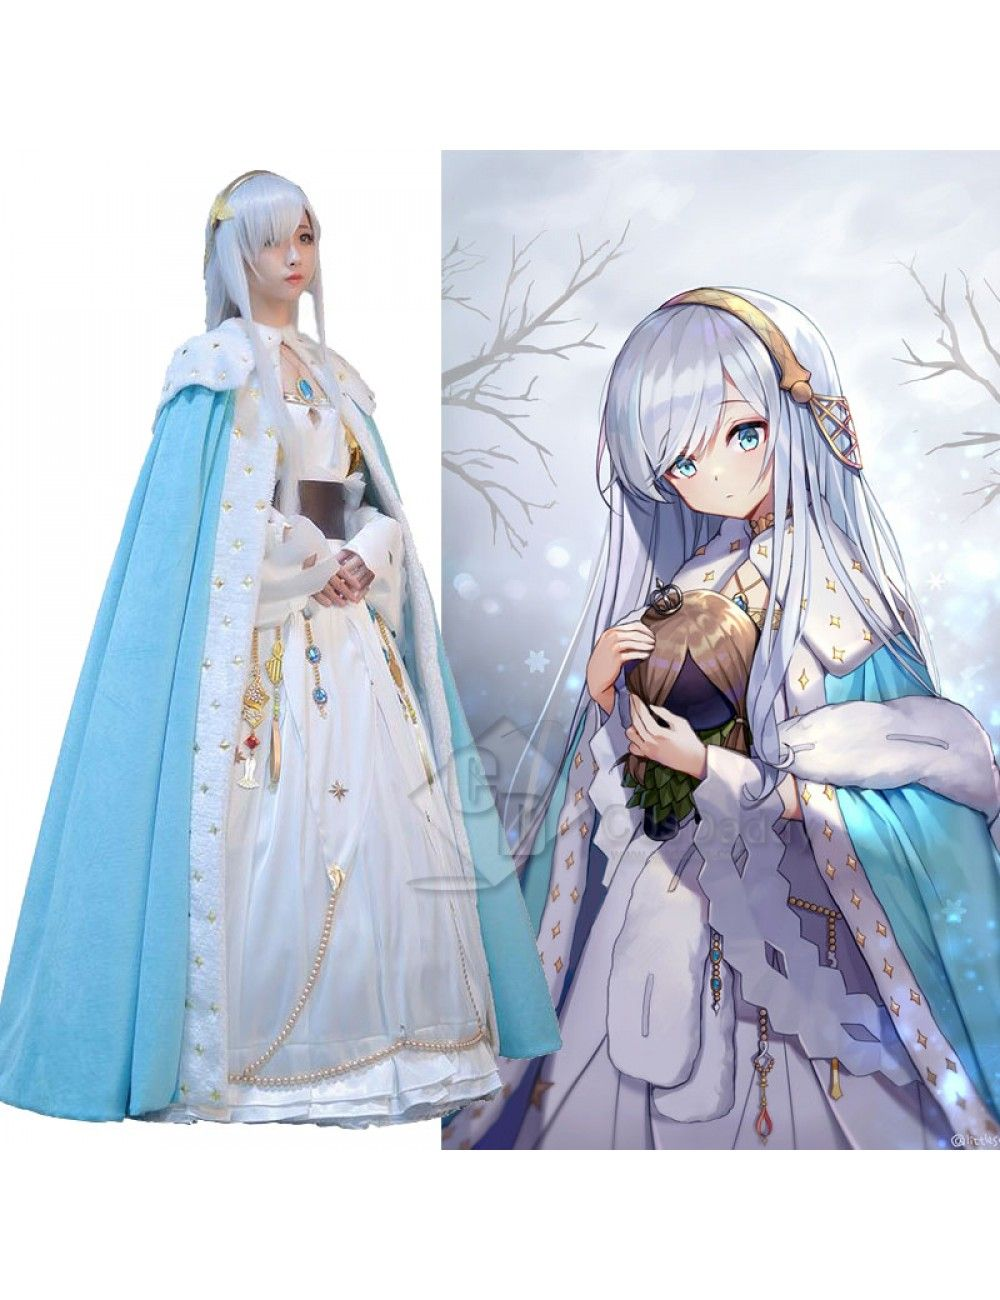 Fate Grand Order Fgo Anastasia Nikolaevna Cosplay Costume Cosplay Costumes Anastasia Cosplay I am a big fan of the universes of the witcher and mortal. fate grand order fgo anastasia